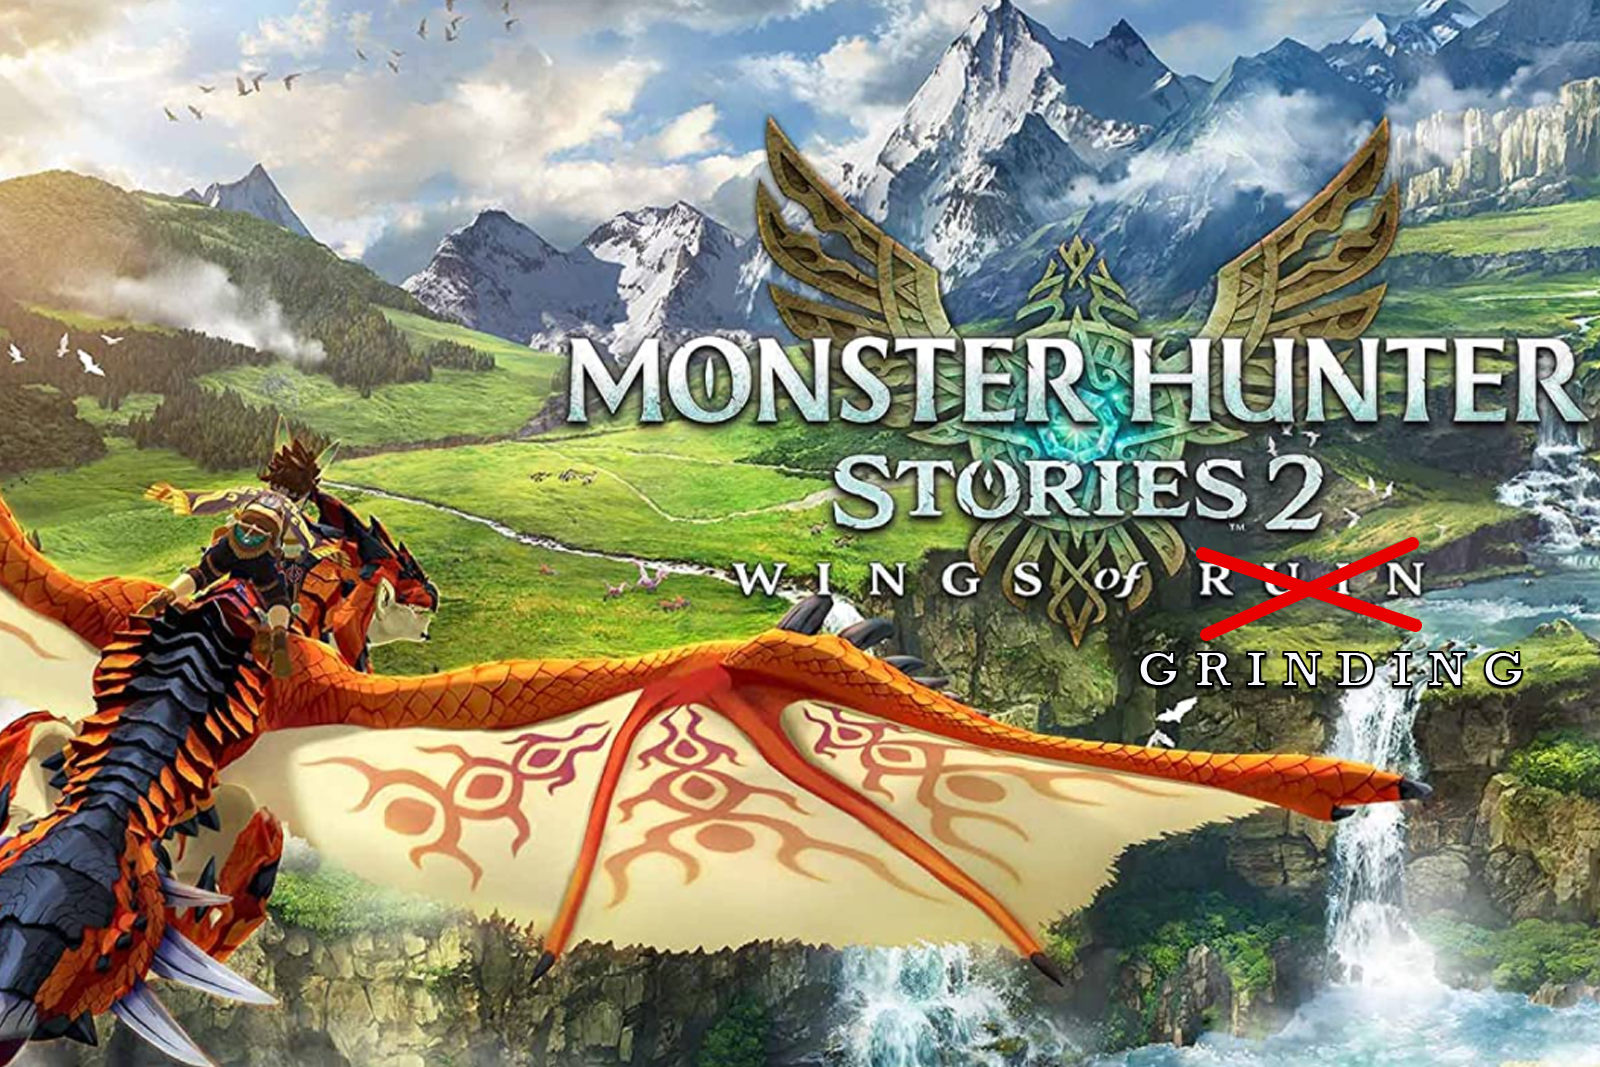 Featured image for Monster Hunter Stories 2 can Either be a Decent JRPG or a Min-Maxing Hellhole. Take Your Pick.